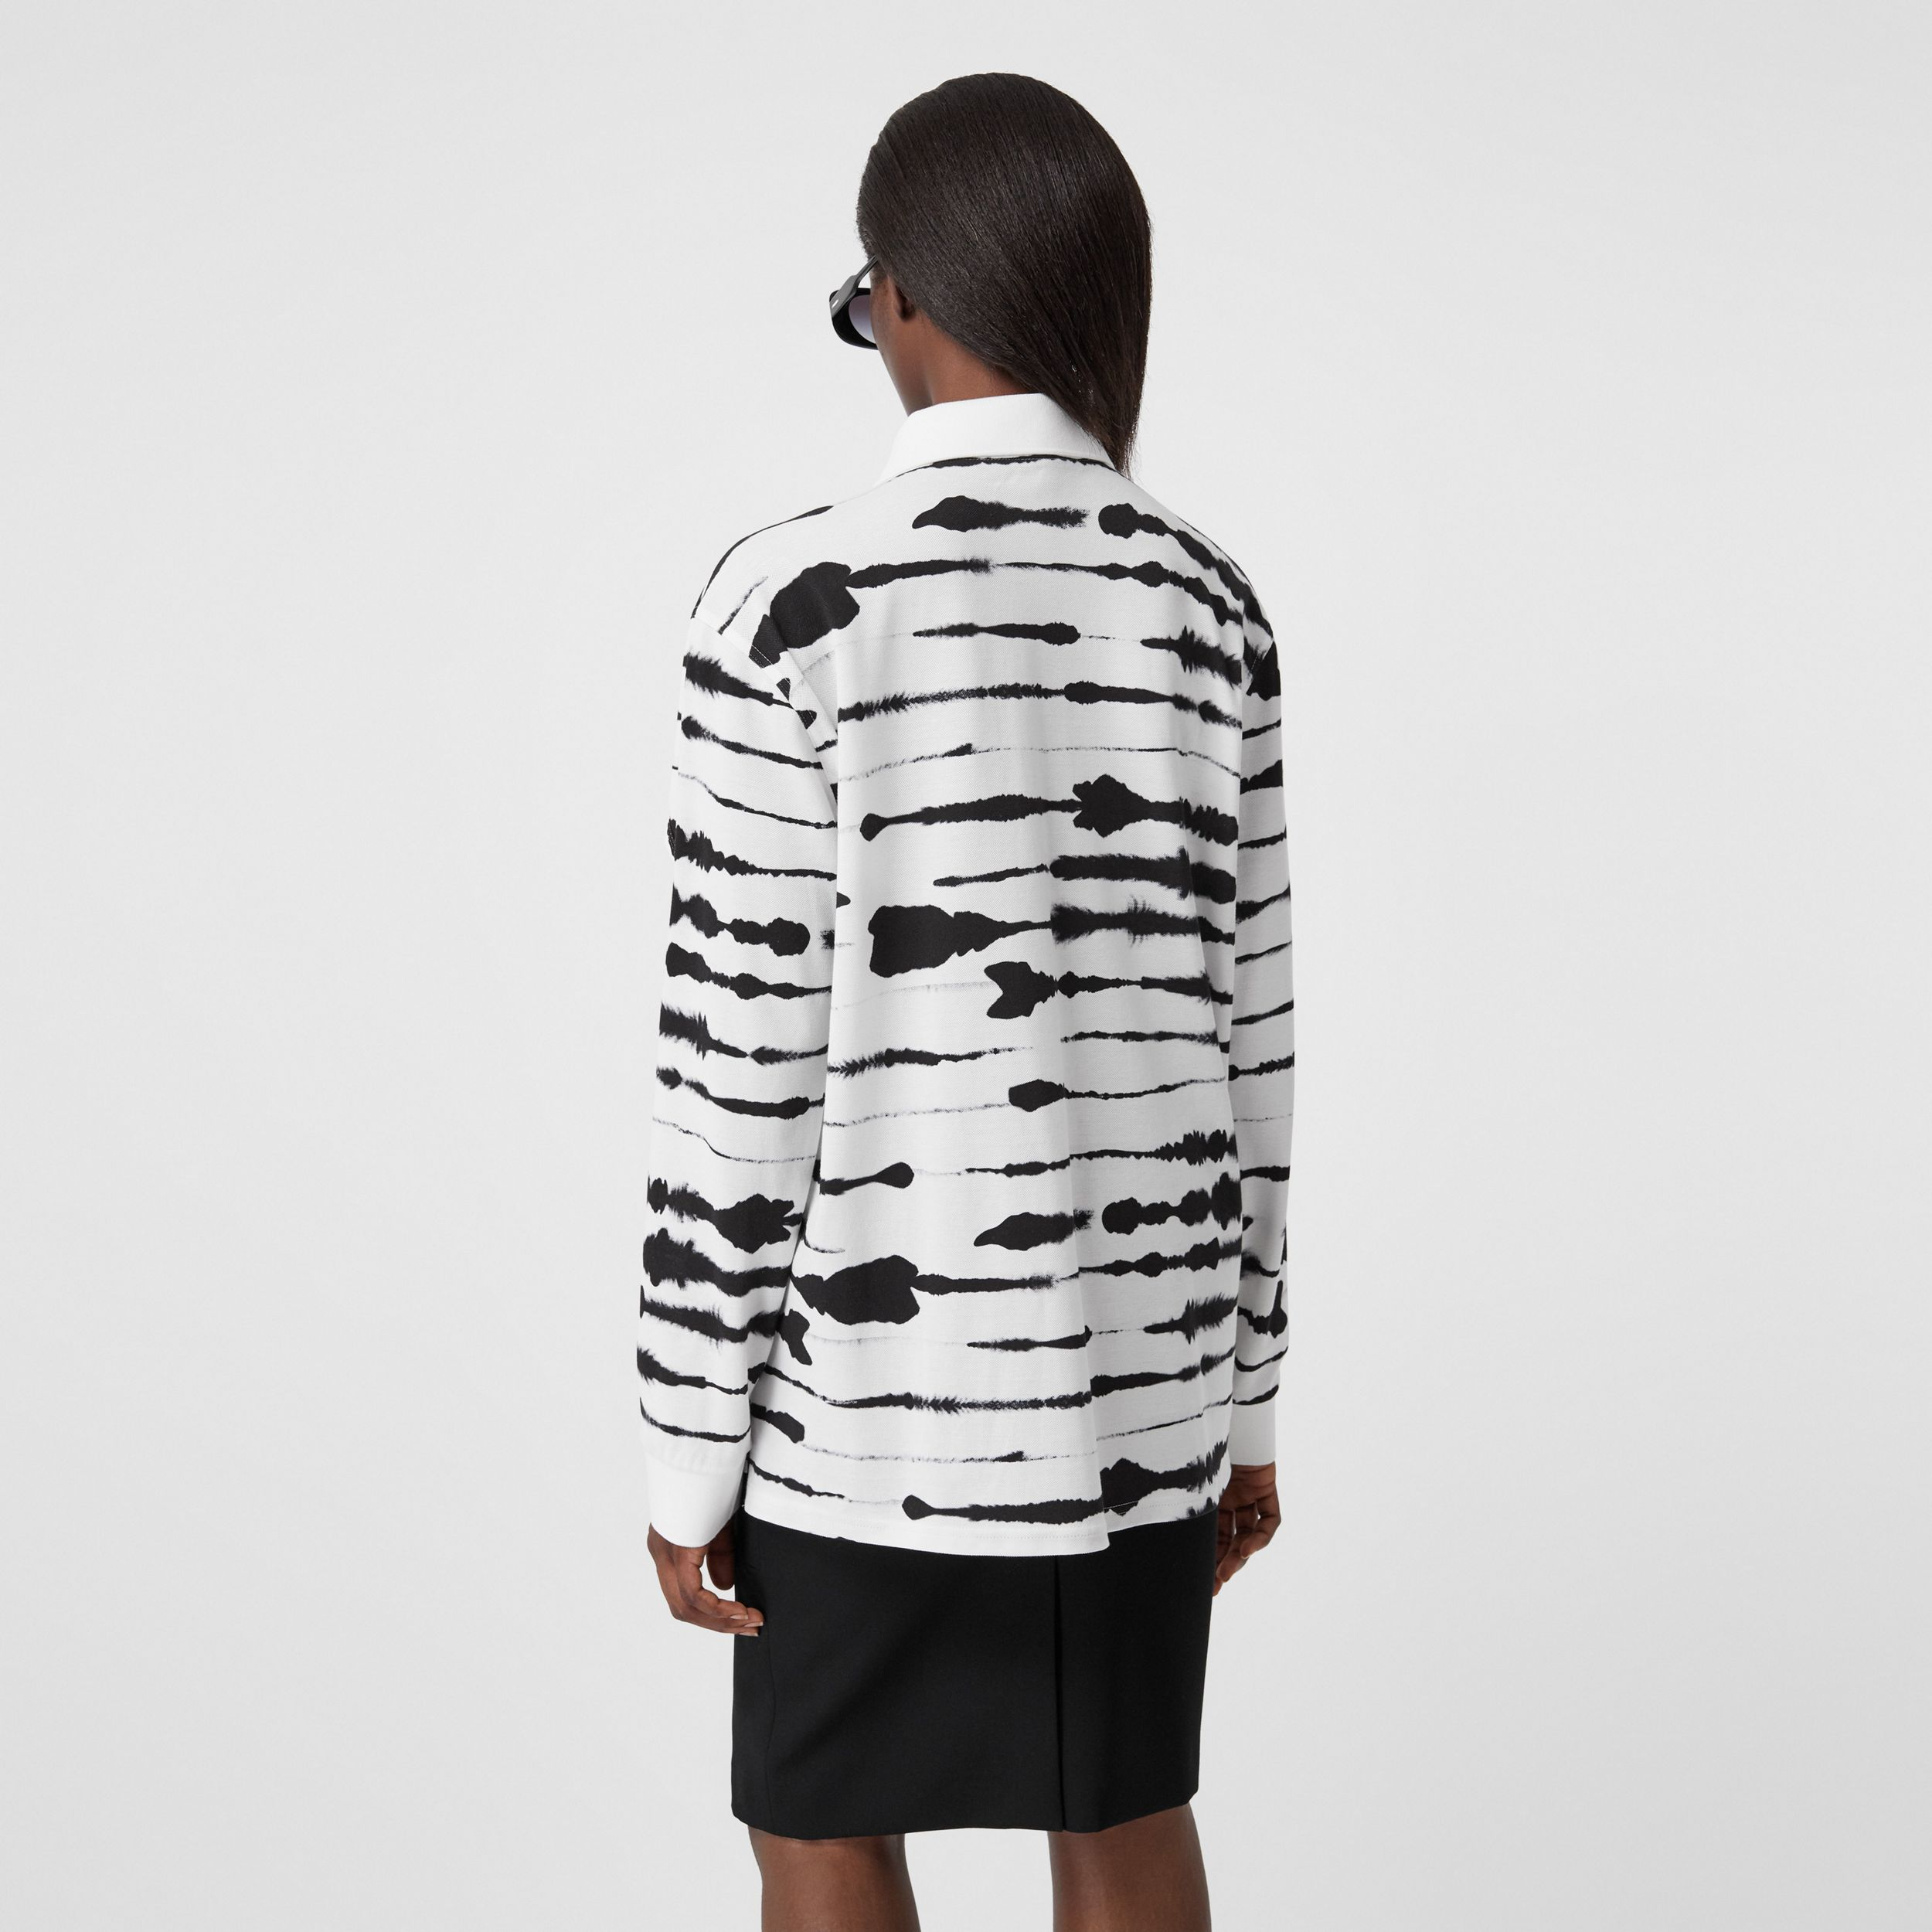 Cut-out Sleeve Watercolour Print Cotton Polo Shirt in Monochrome - Women | Burberry - 3